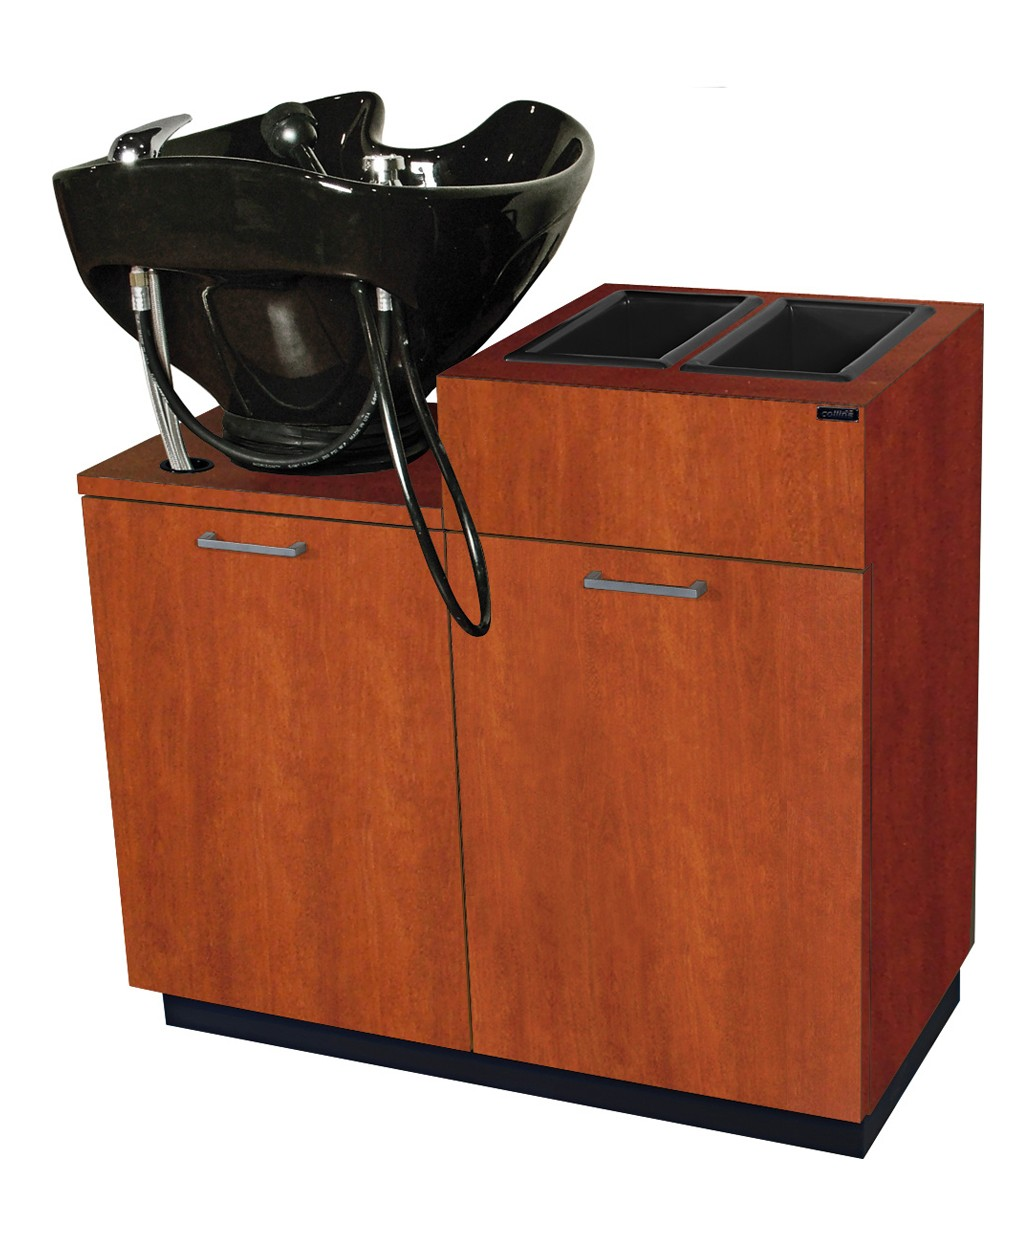 Collins QSE 5944-32 Deluxe Backwash Shampoo Unit w/ CB87 Bowl